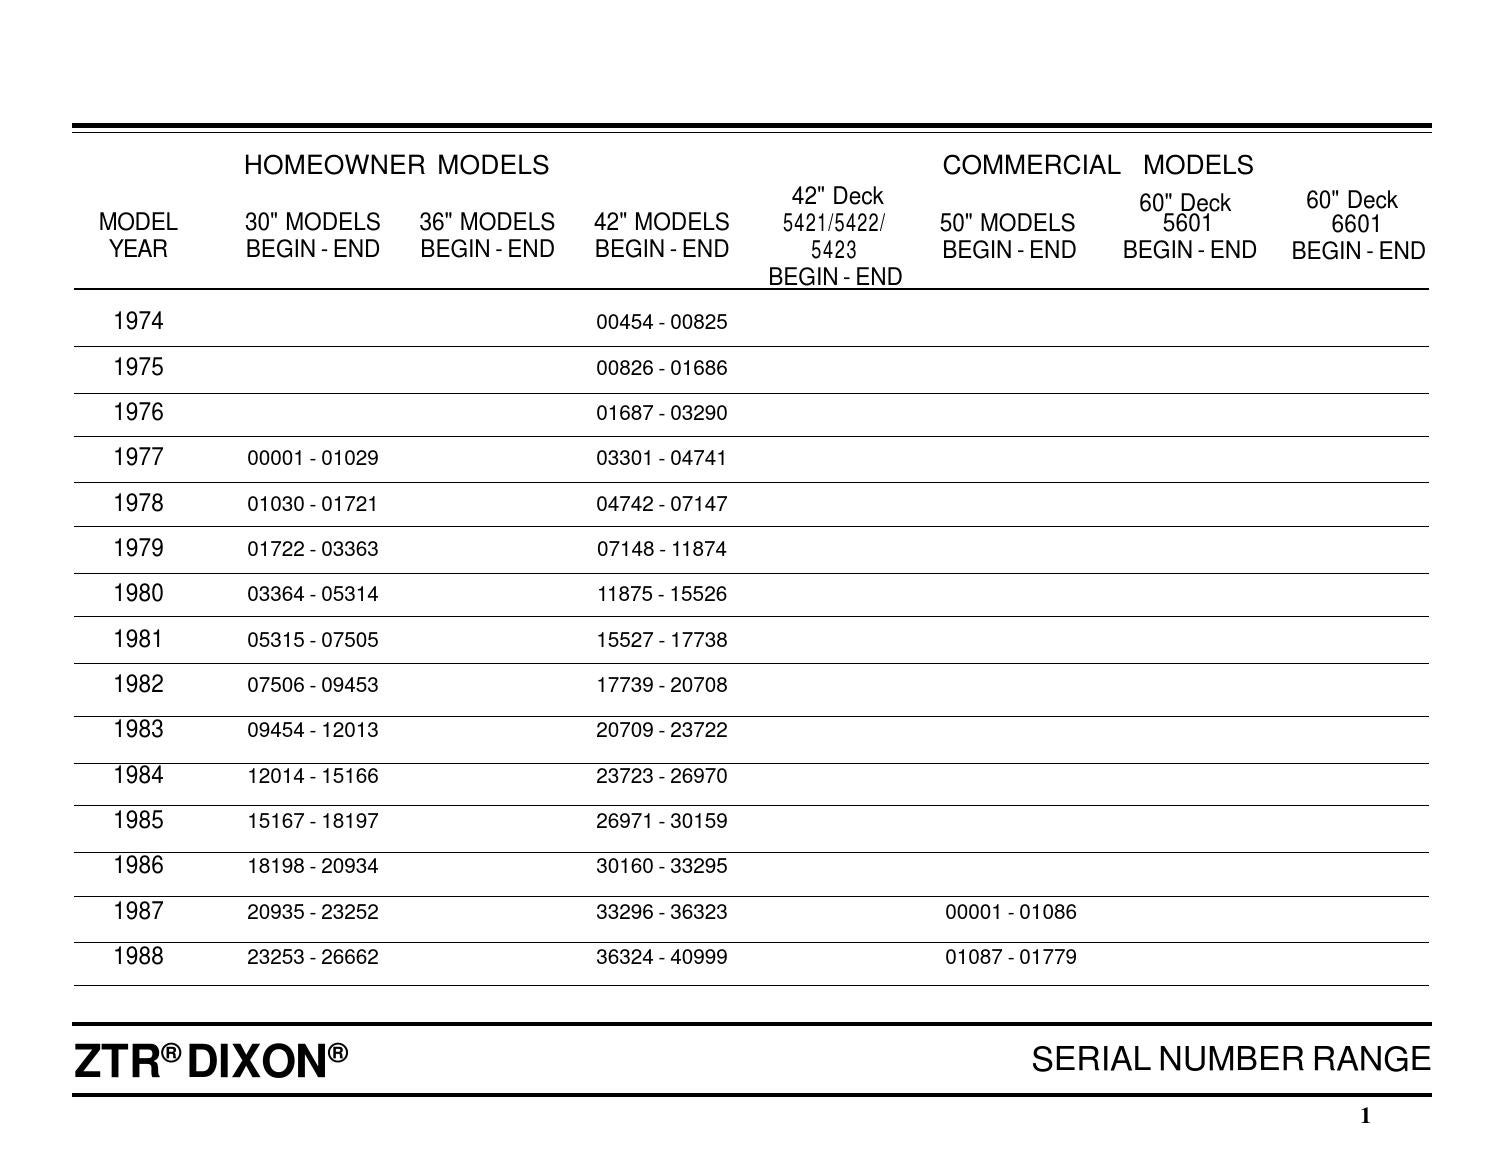 Dixon ZTR - Serial Numbers & Models history guide by glsense - issuu